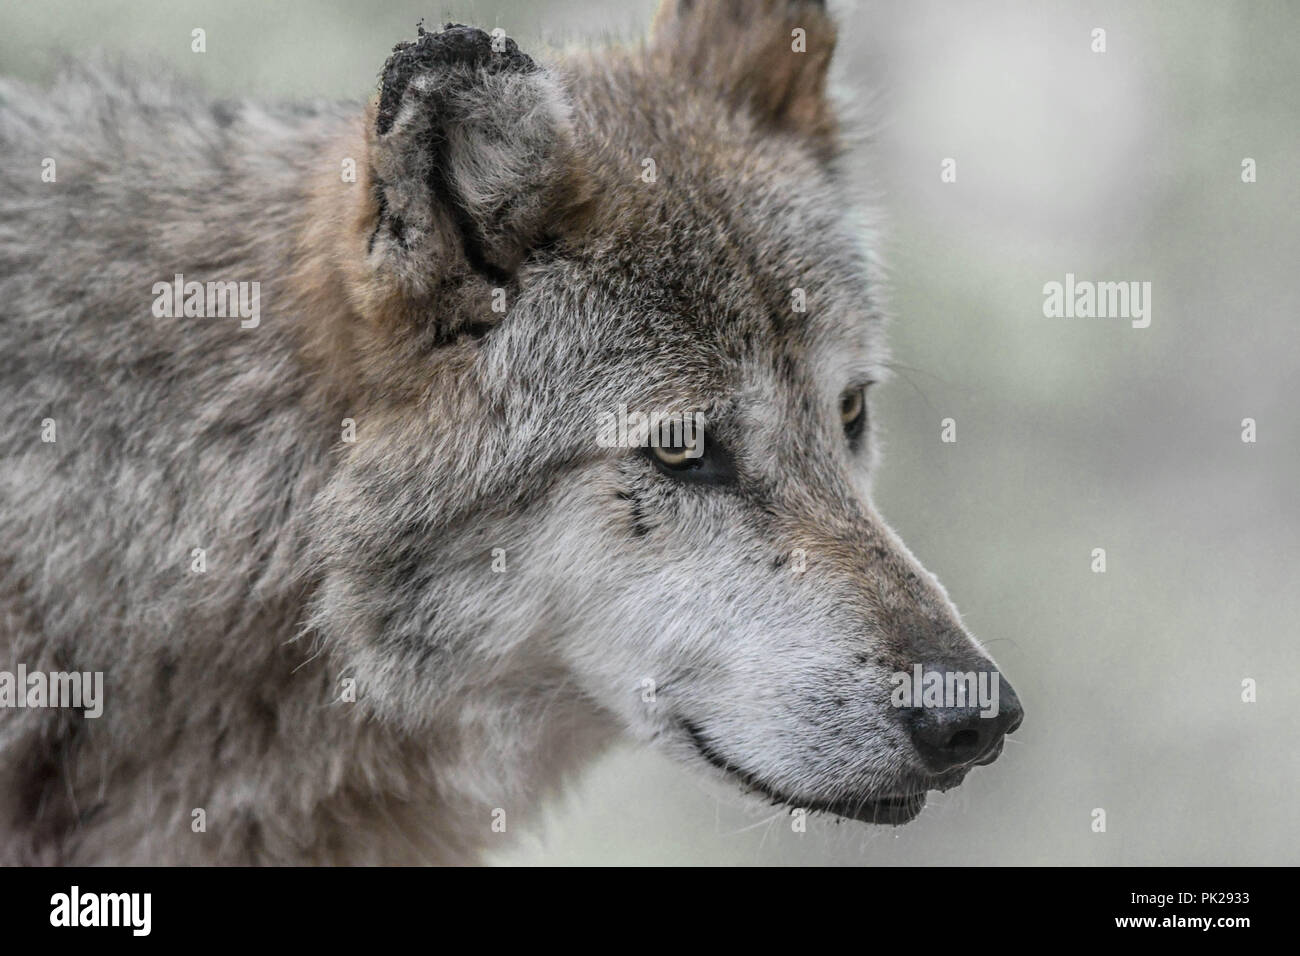 A Mexican gray wolf with scars on his right ear and face Stock Photo